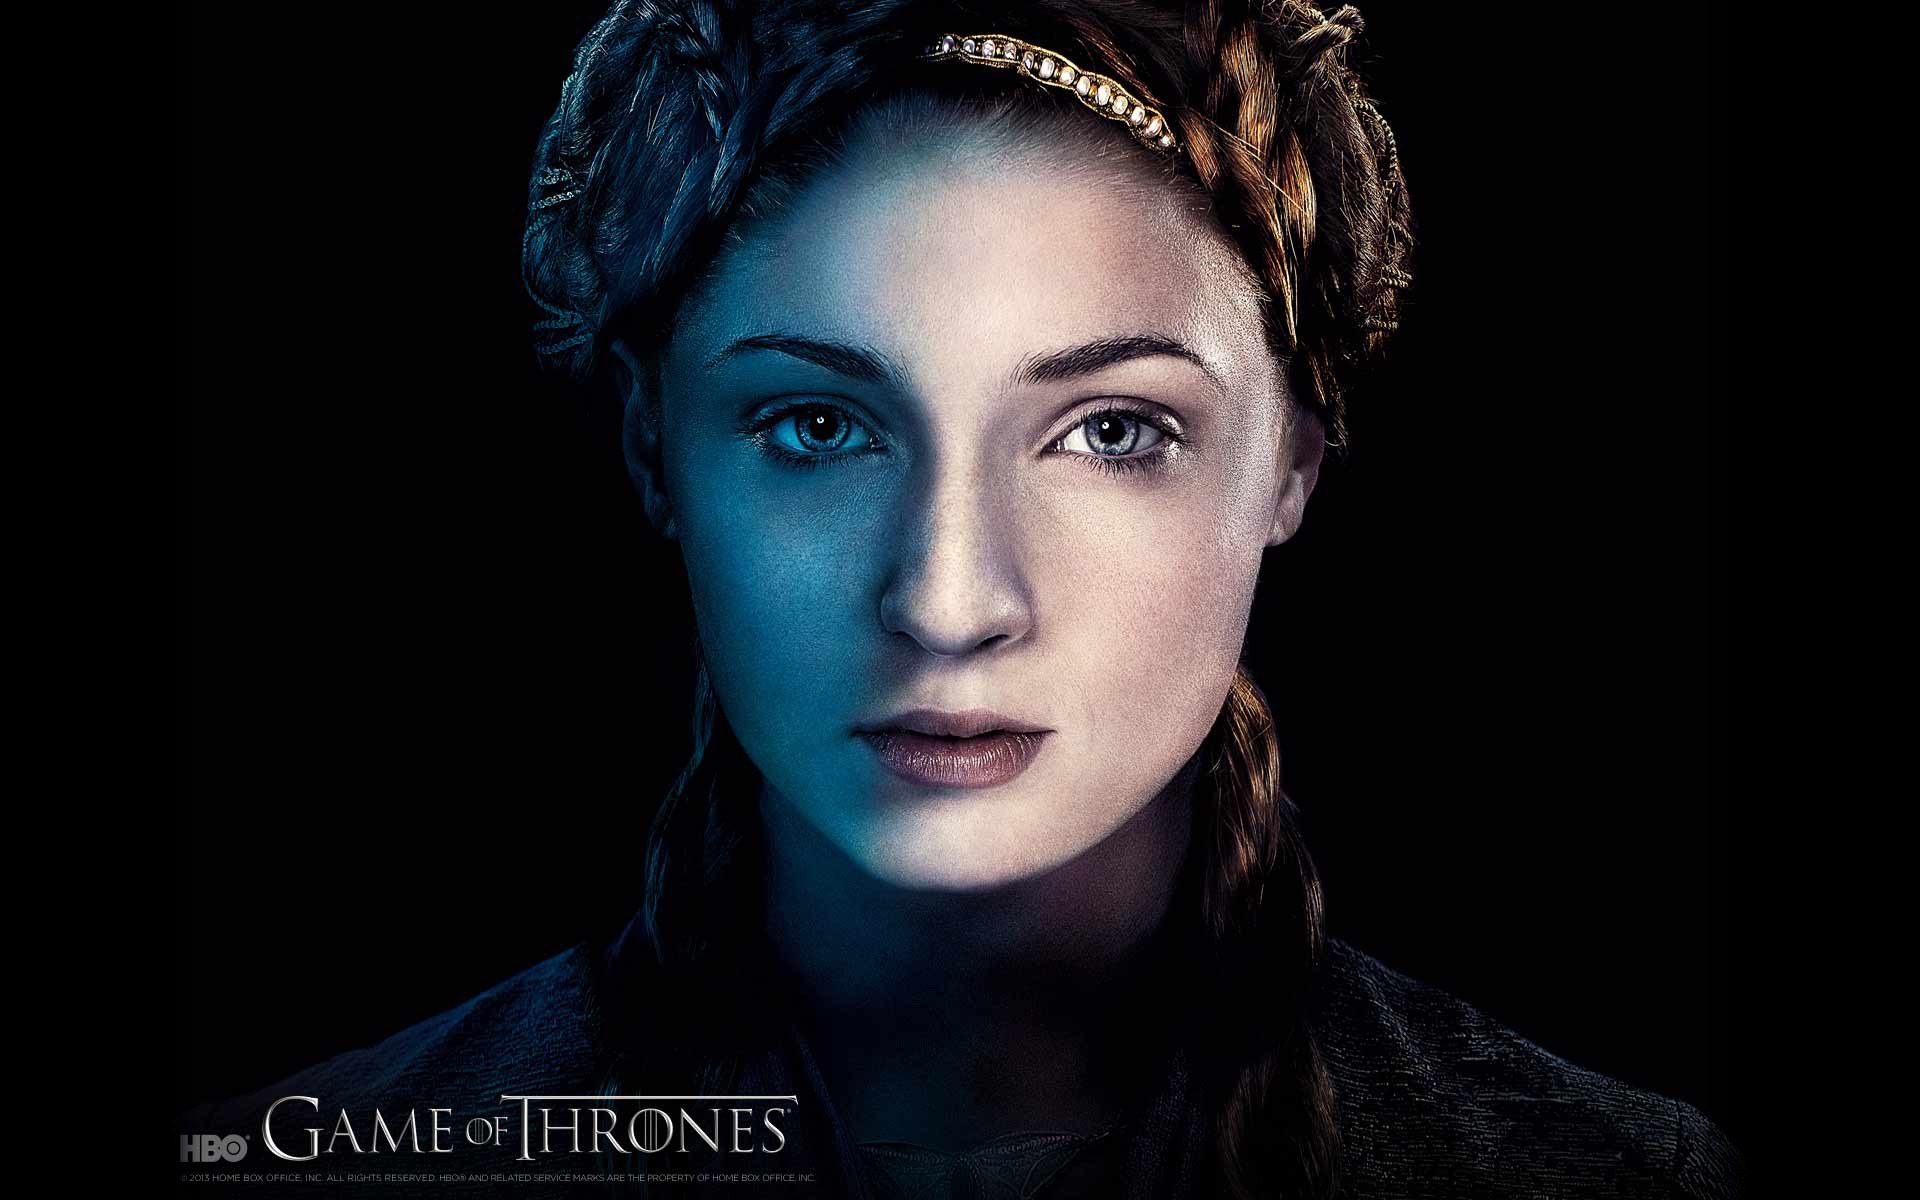 Sansa Stark Game of Thrones for 1920 x 1200 widescreen resolution